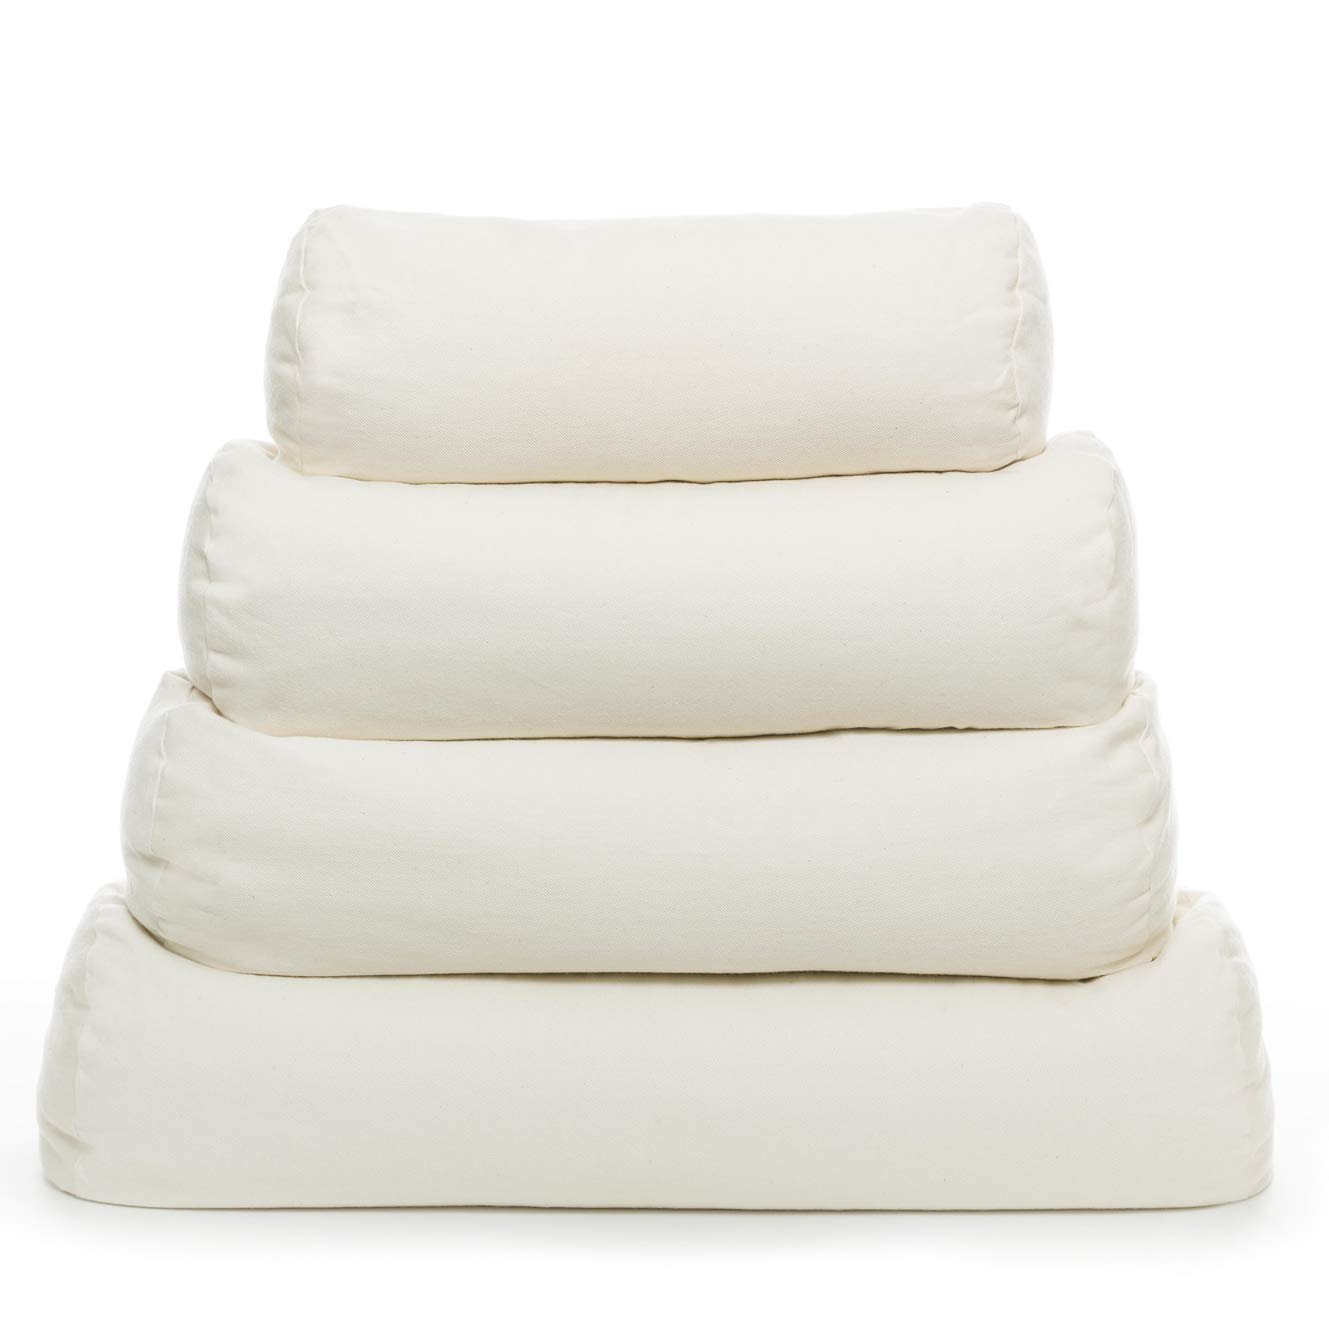 Comfy Neck Side Sleeper Buckwheat Hull Pillow with Pillowcase - Medium (17'' x 6'') - Made in USA